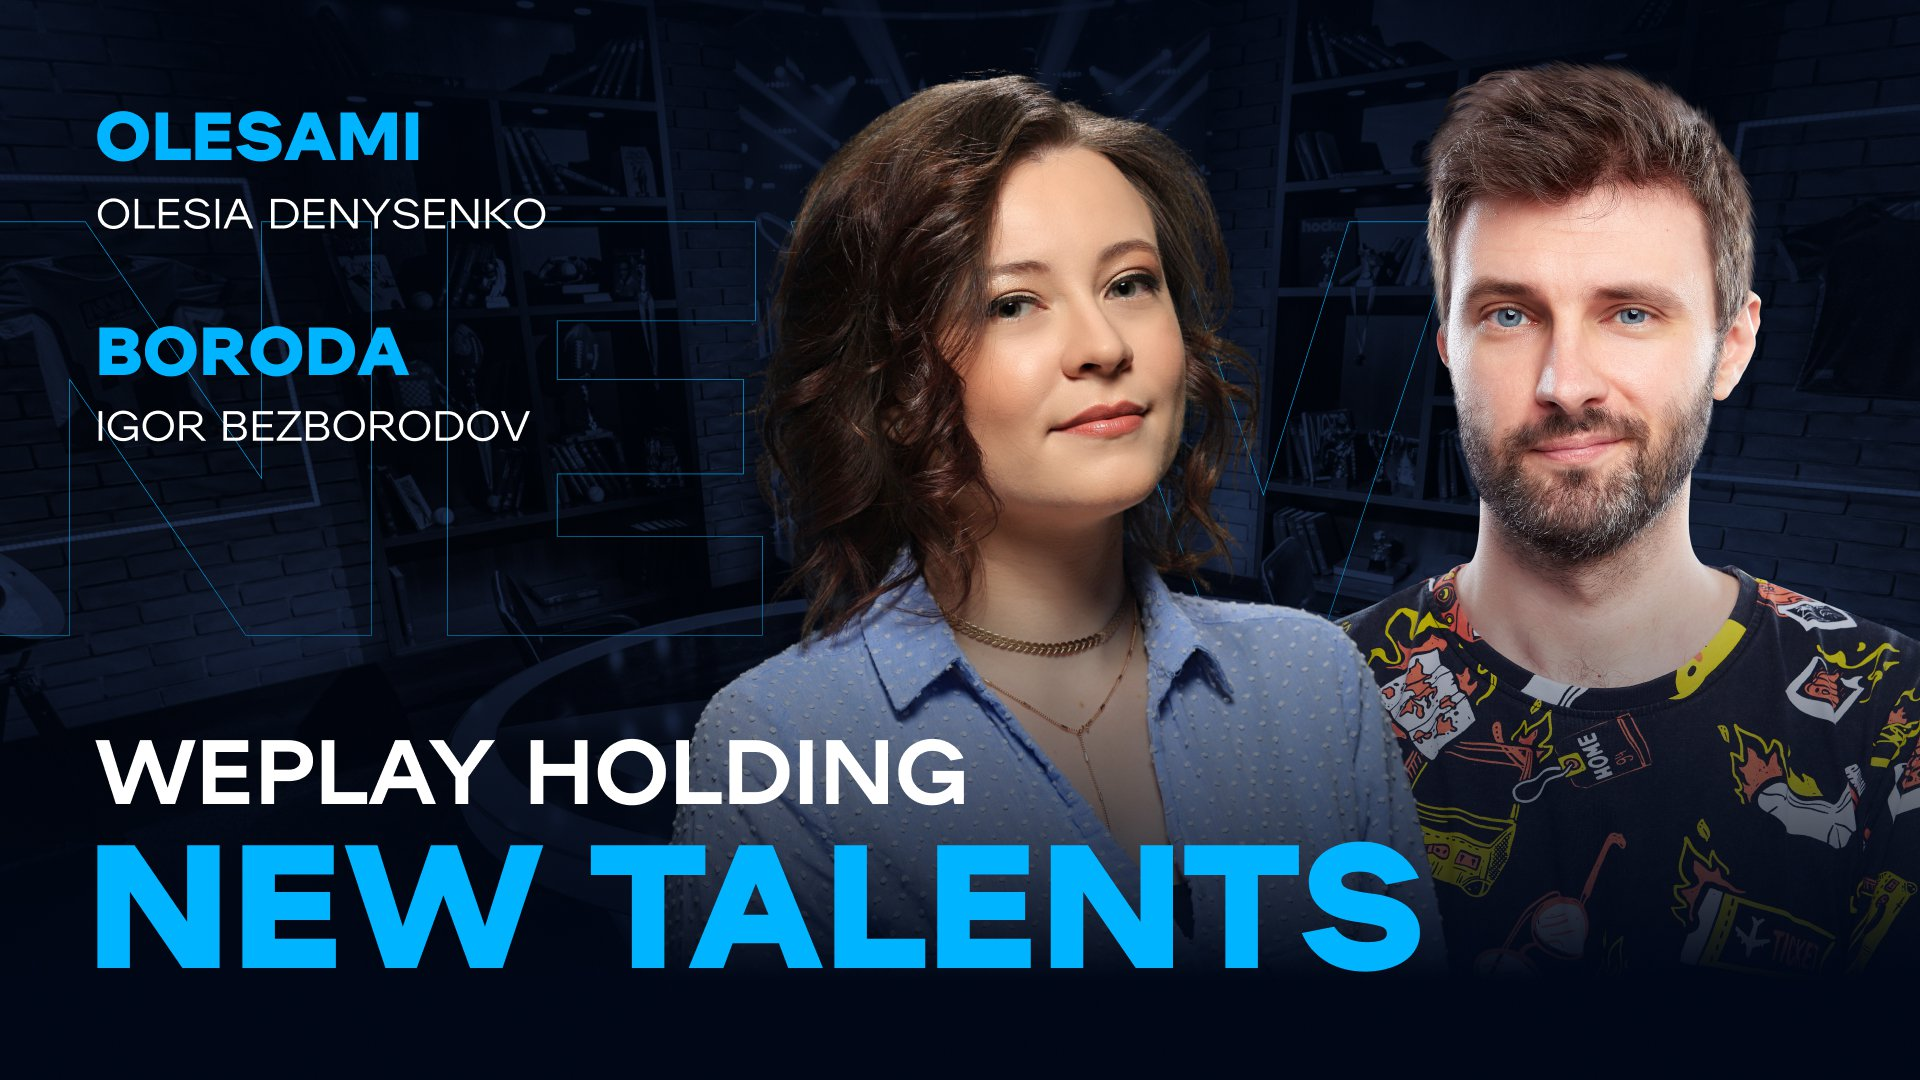 WePlay Holding new talents. Visual: WePlay Holding